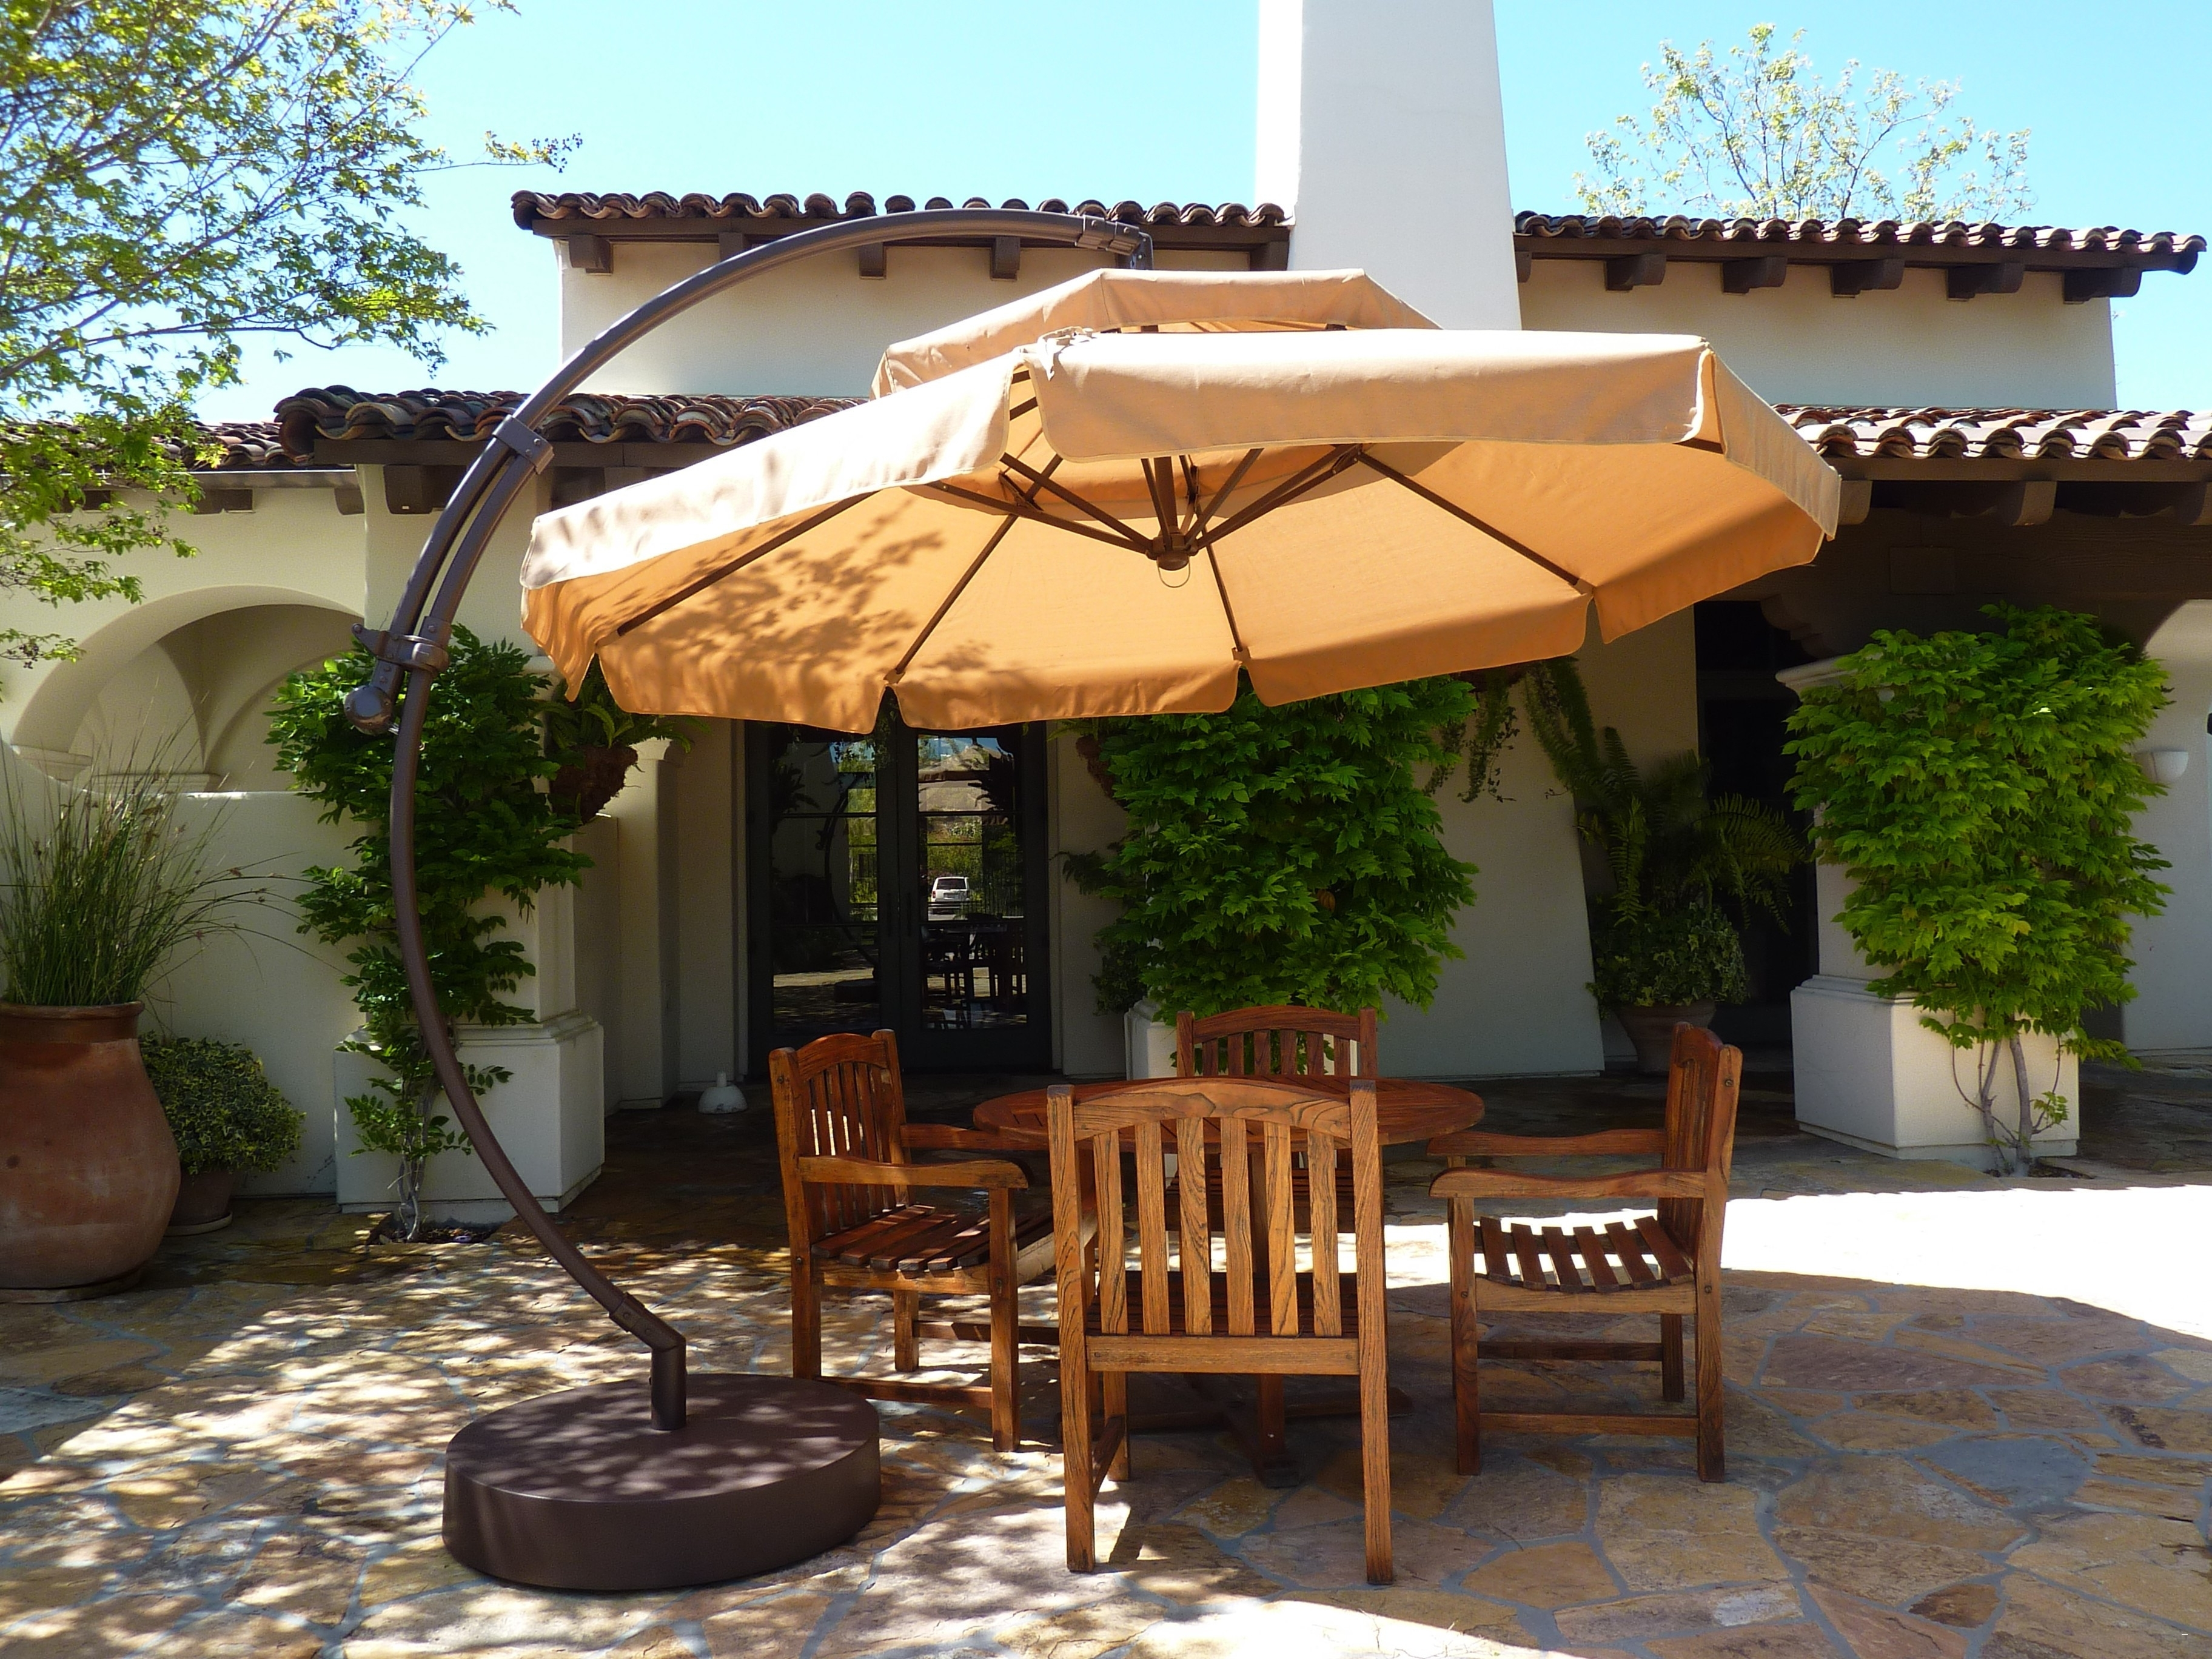 Most Recently Released Costco Patio Umbrellas Pertaining To Costco Patio Umbrella – Inspirational Patio Covers Costco Fresh Free (View 12 of 20)